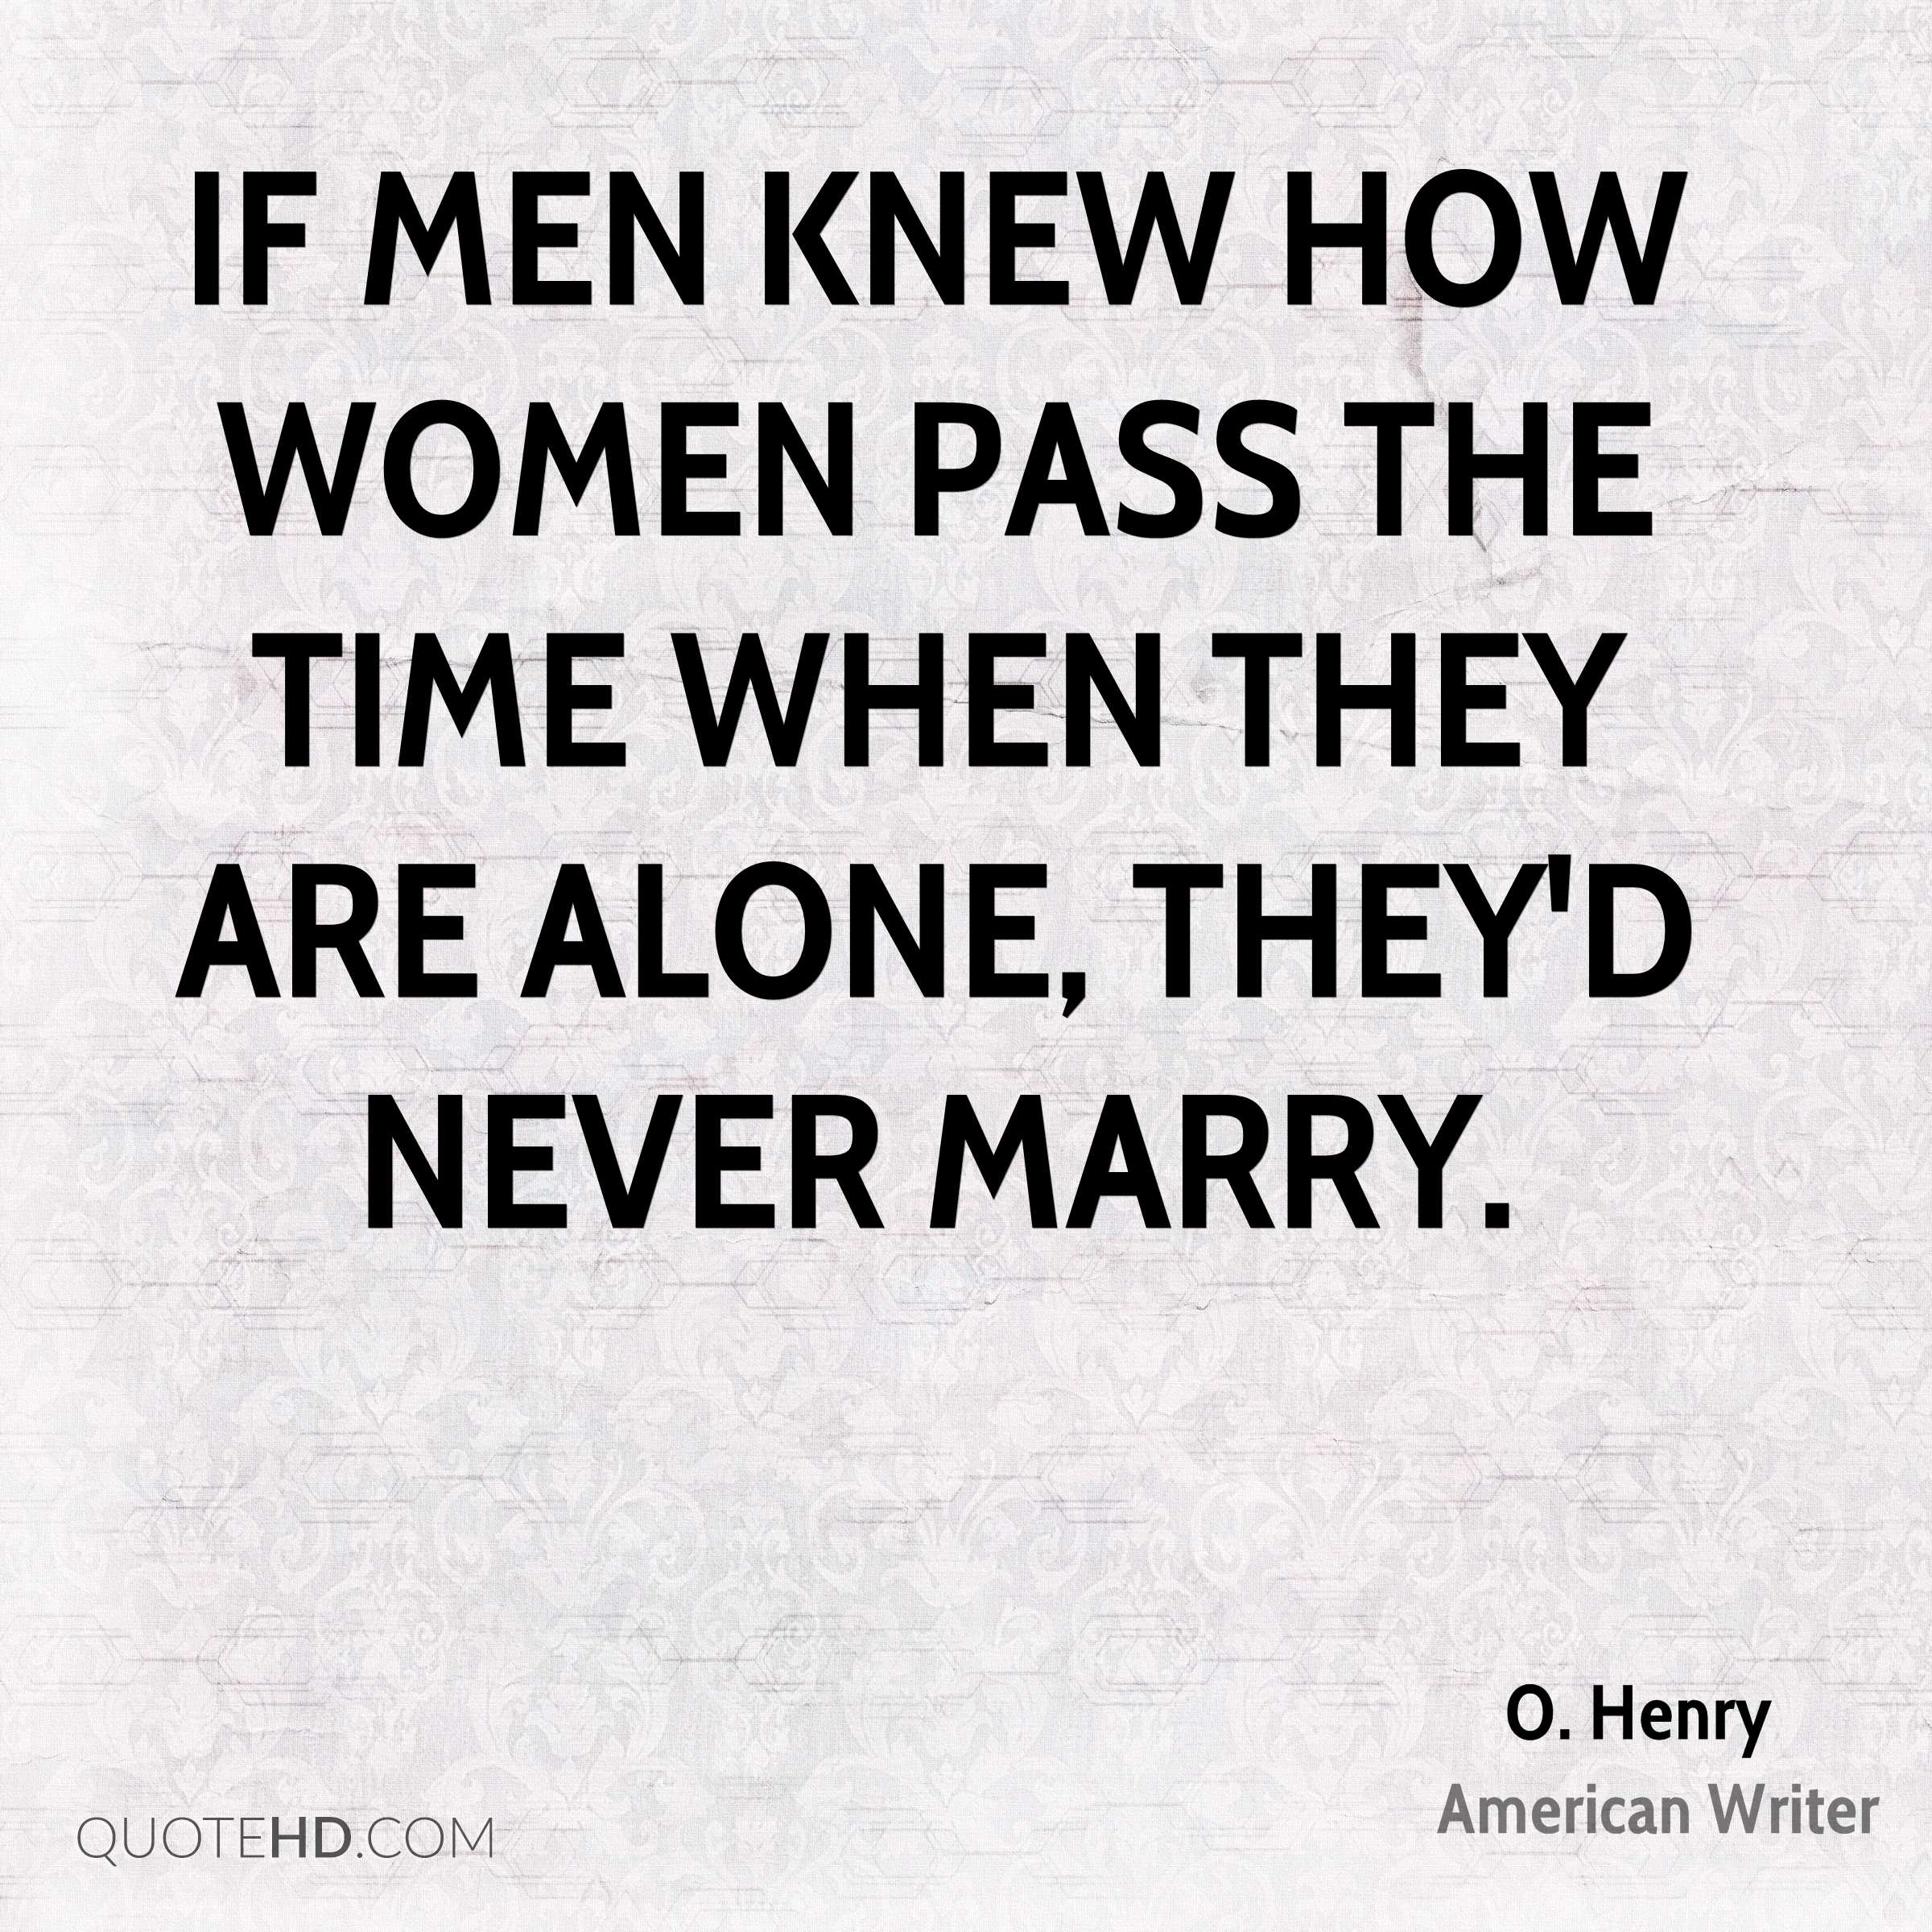 If men knew how women pass the time when they are alone, they'd never marry.